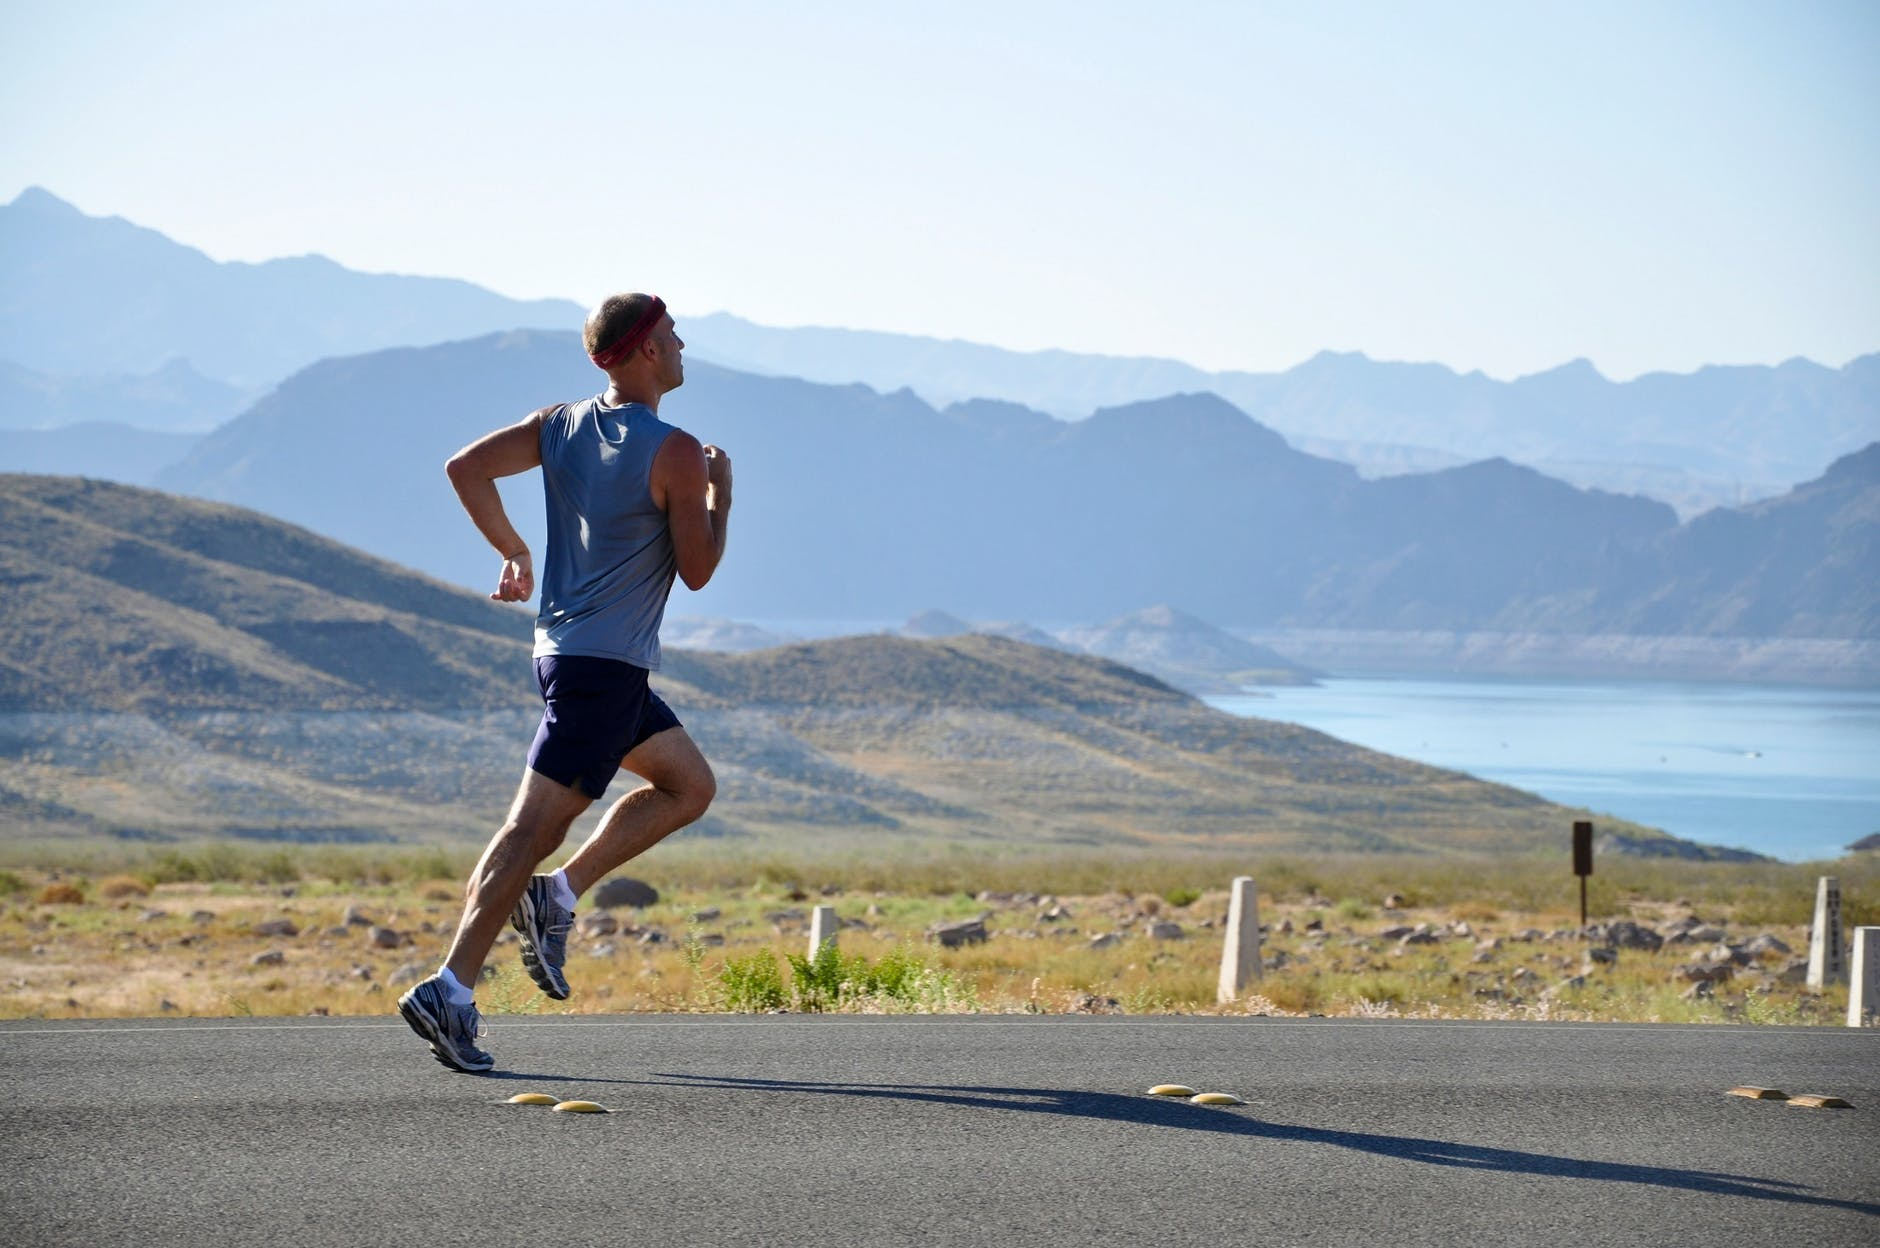 A man running on road with the mountains in the background.